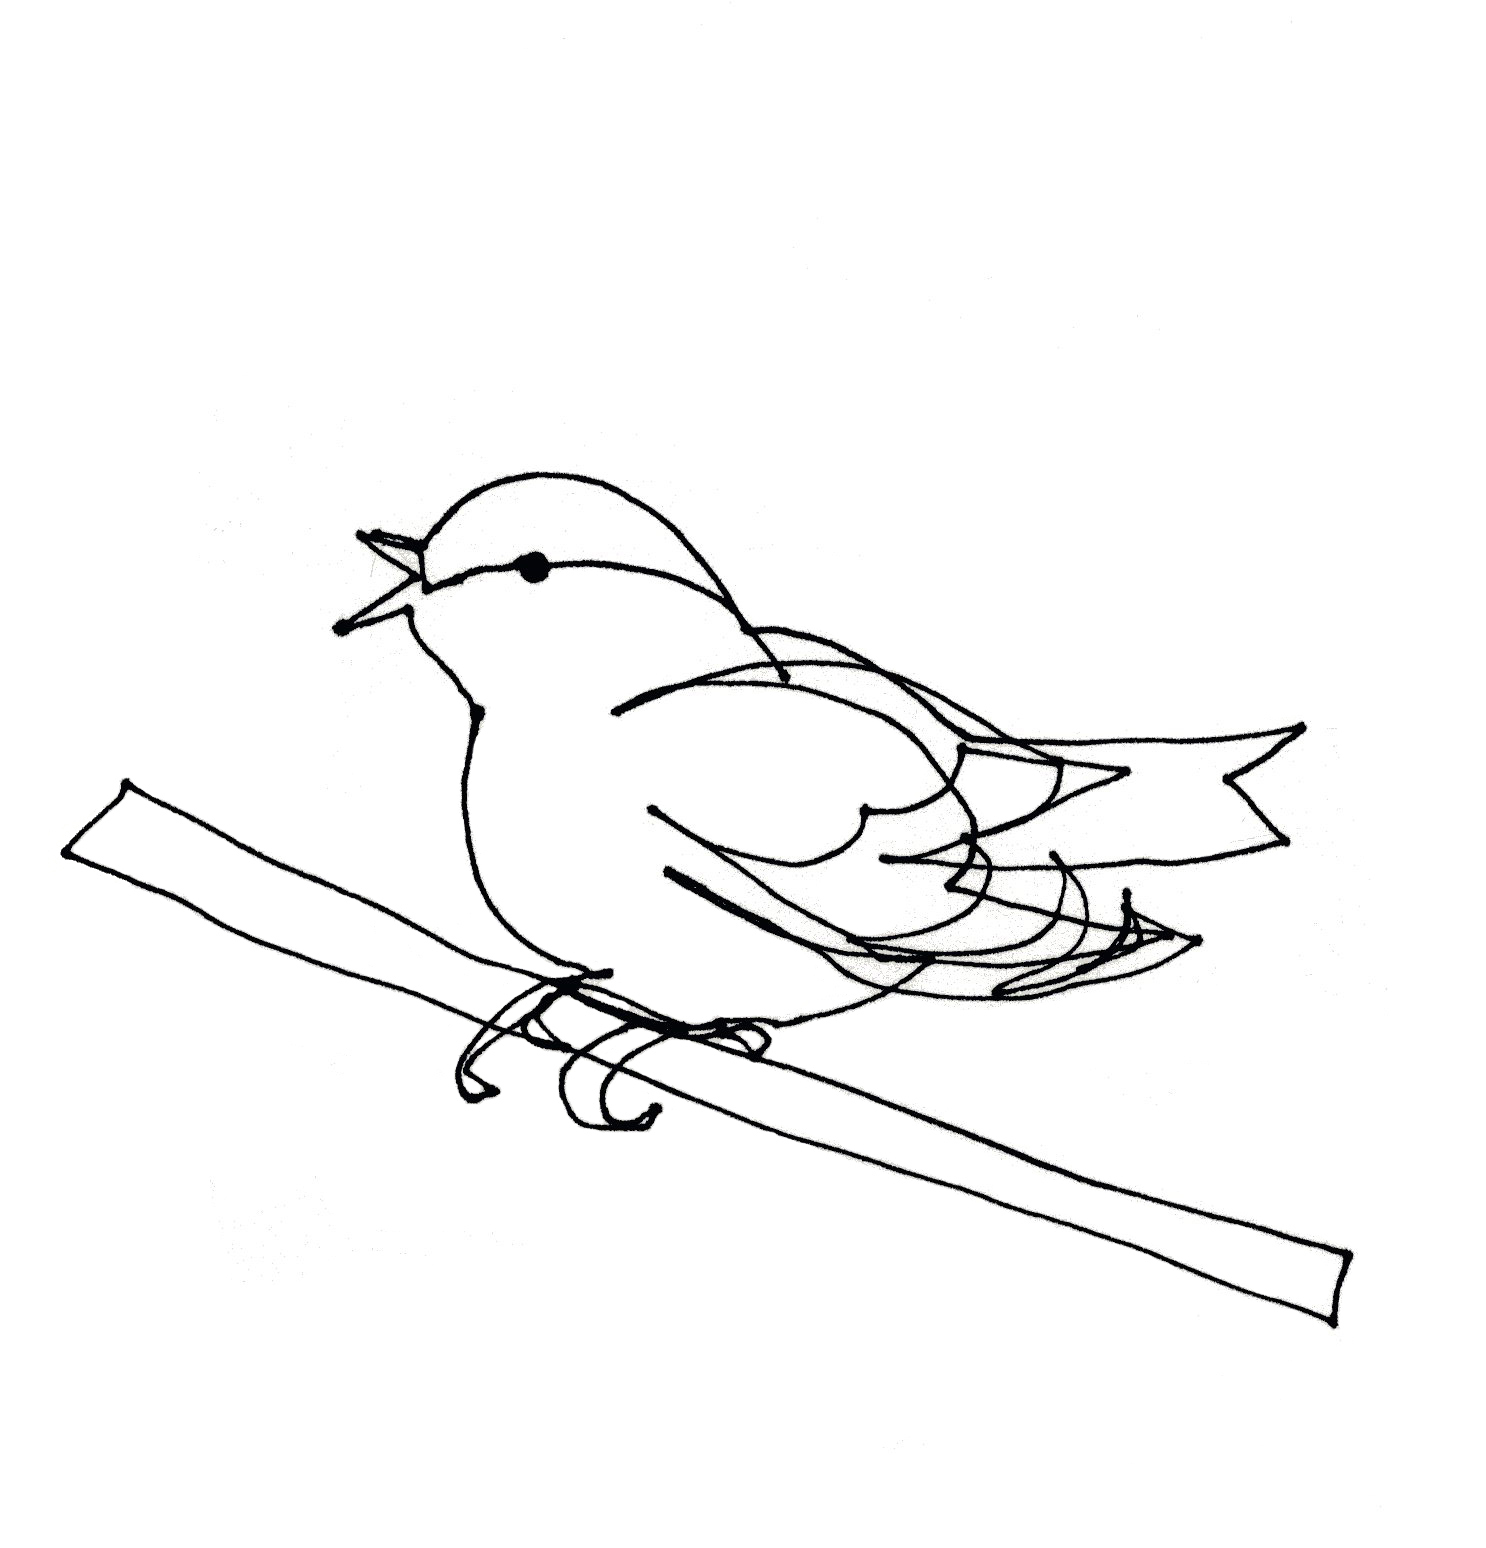 Line Drawing Bird : Single line drawings birds of pray